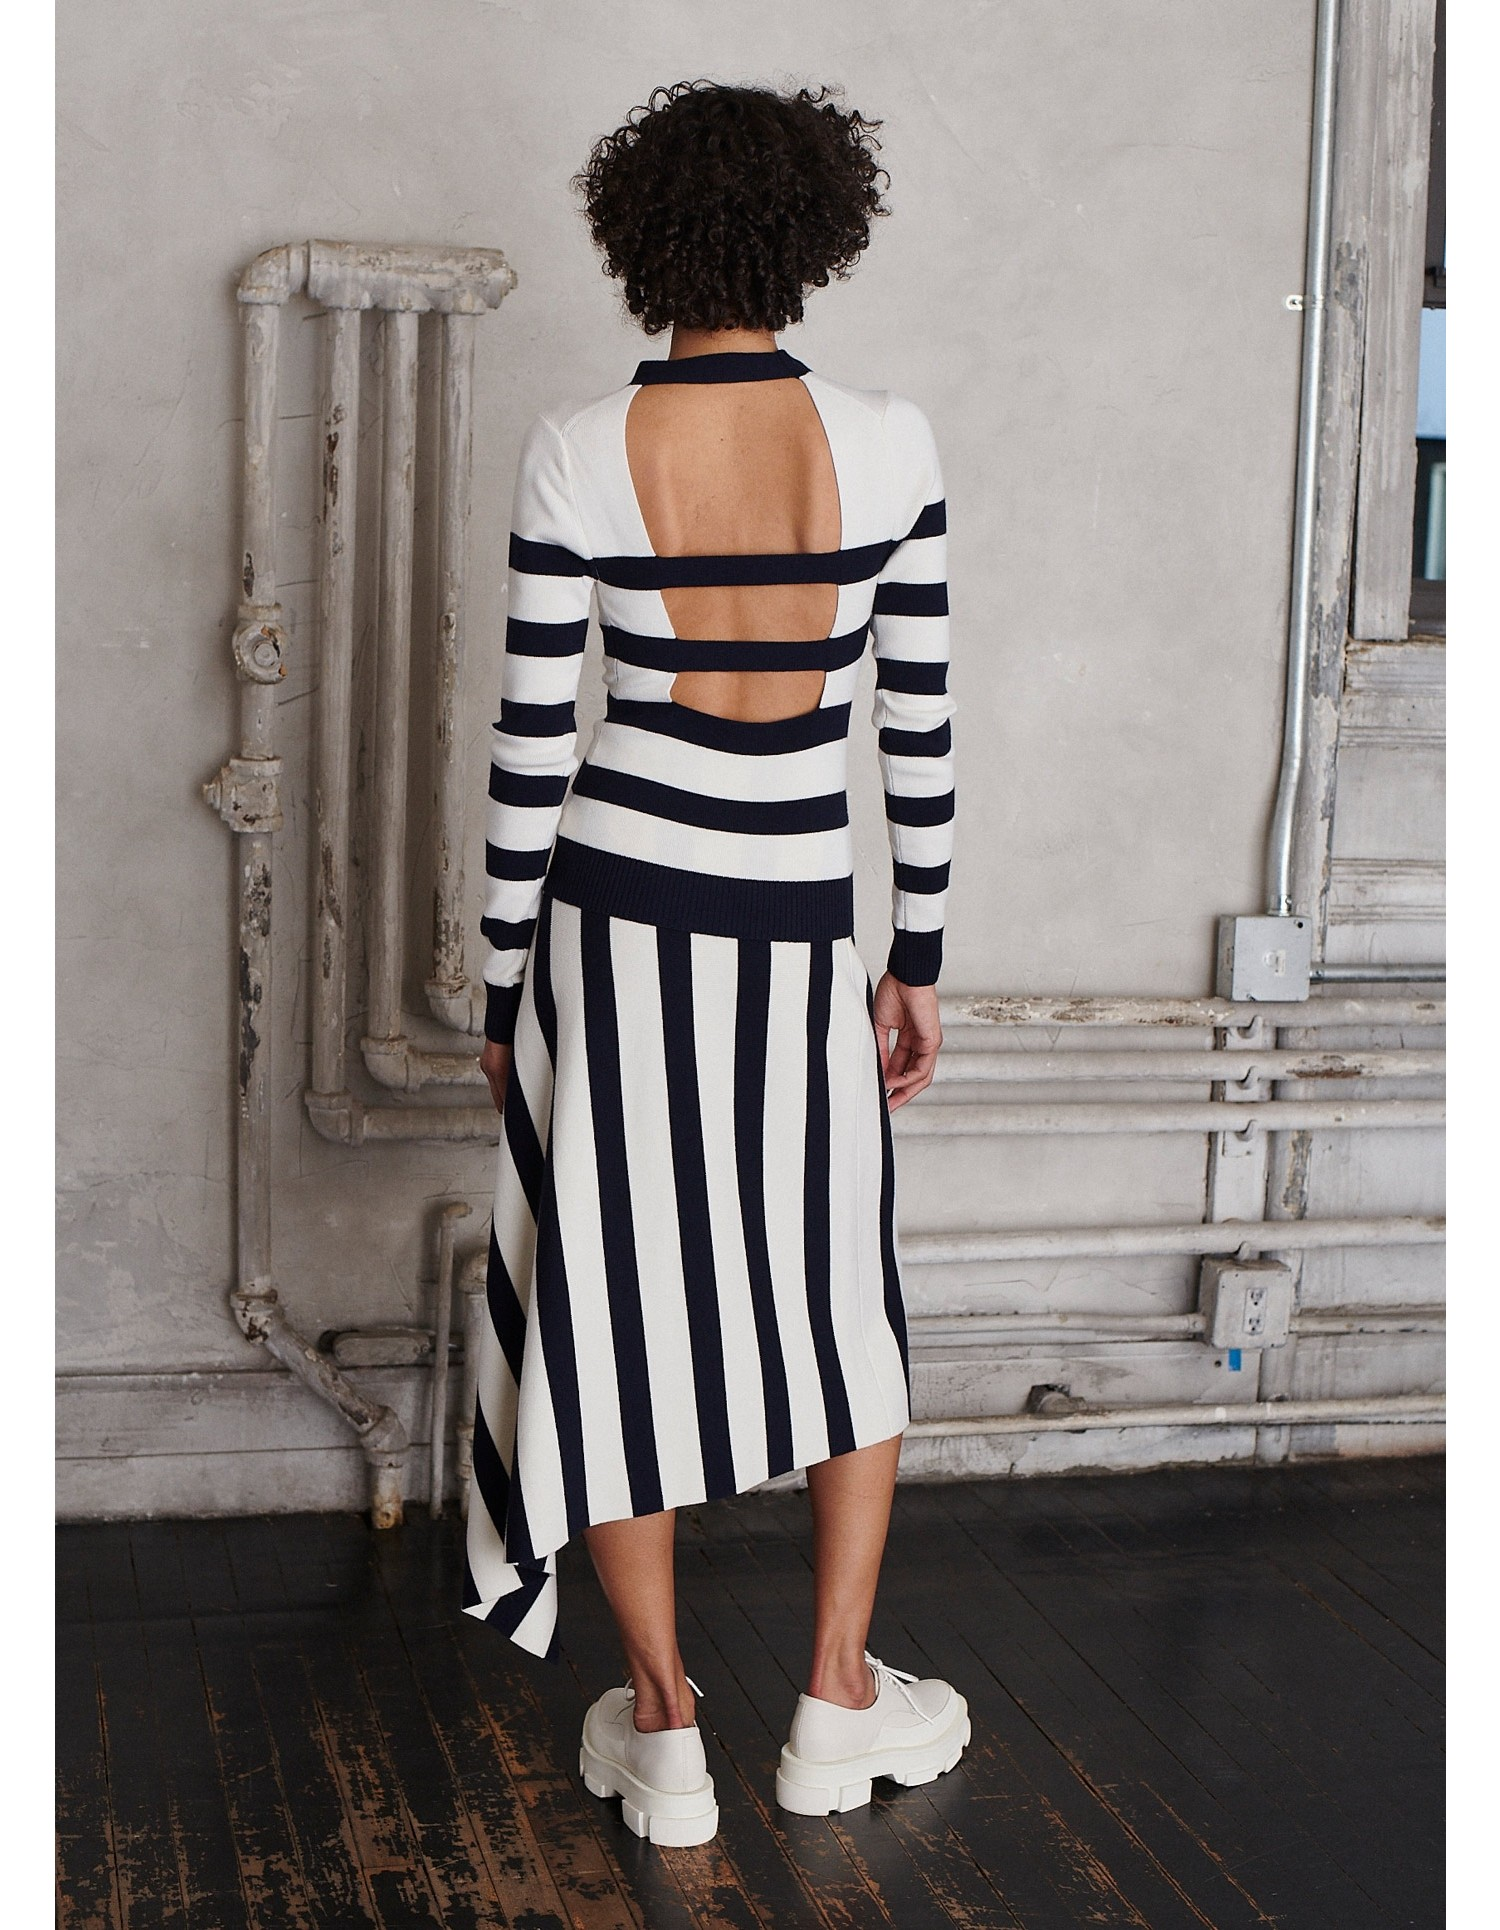 MONSE Cut Out Stripe Knit Top in Midnight and Ivory on Model Back View